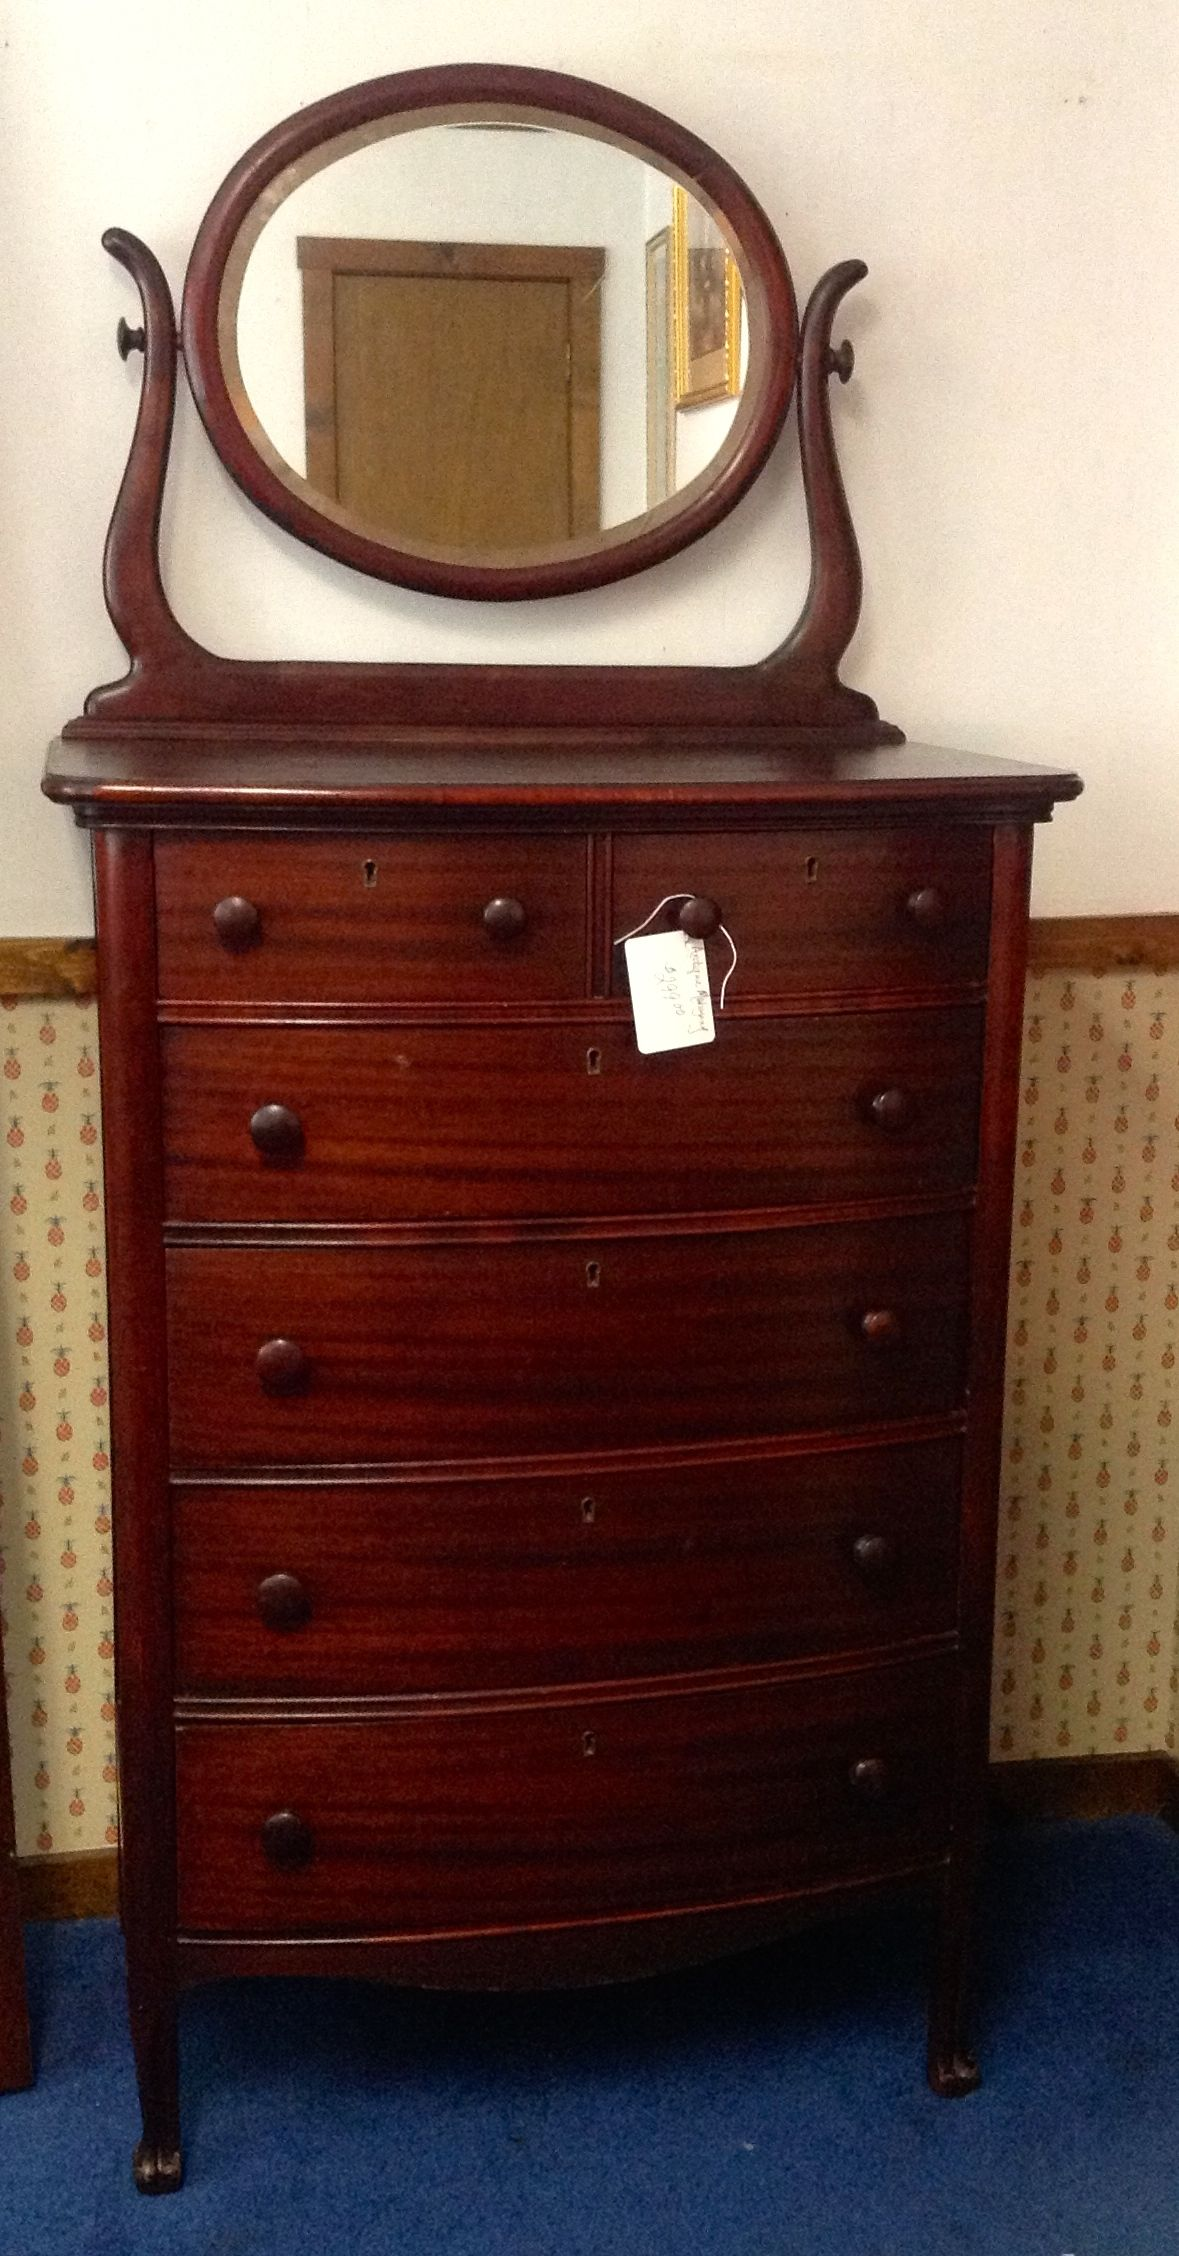 Antique Chest Of Drawers With Mirror A Beautiful Piece From Yesteryear Carolescollections